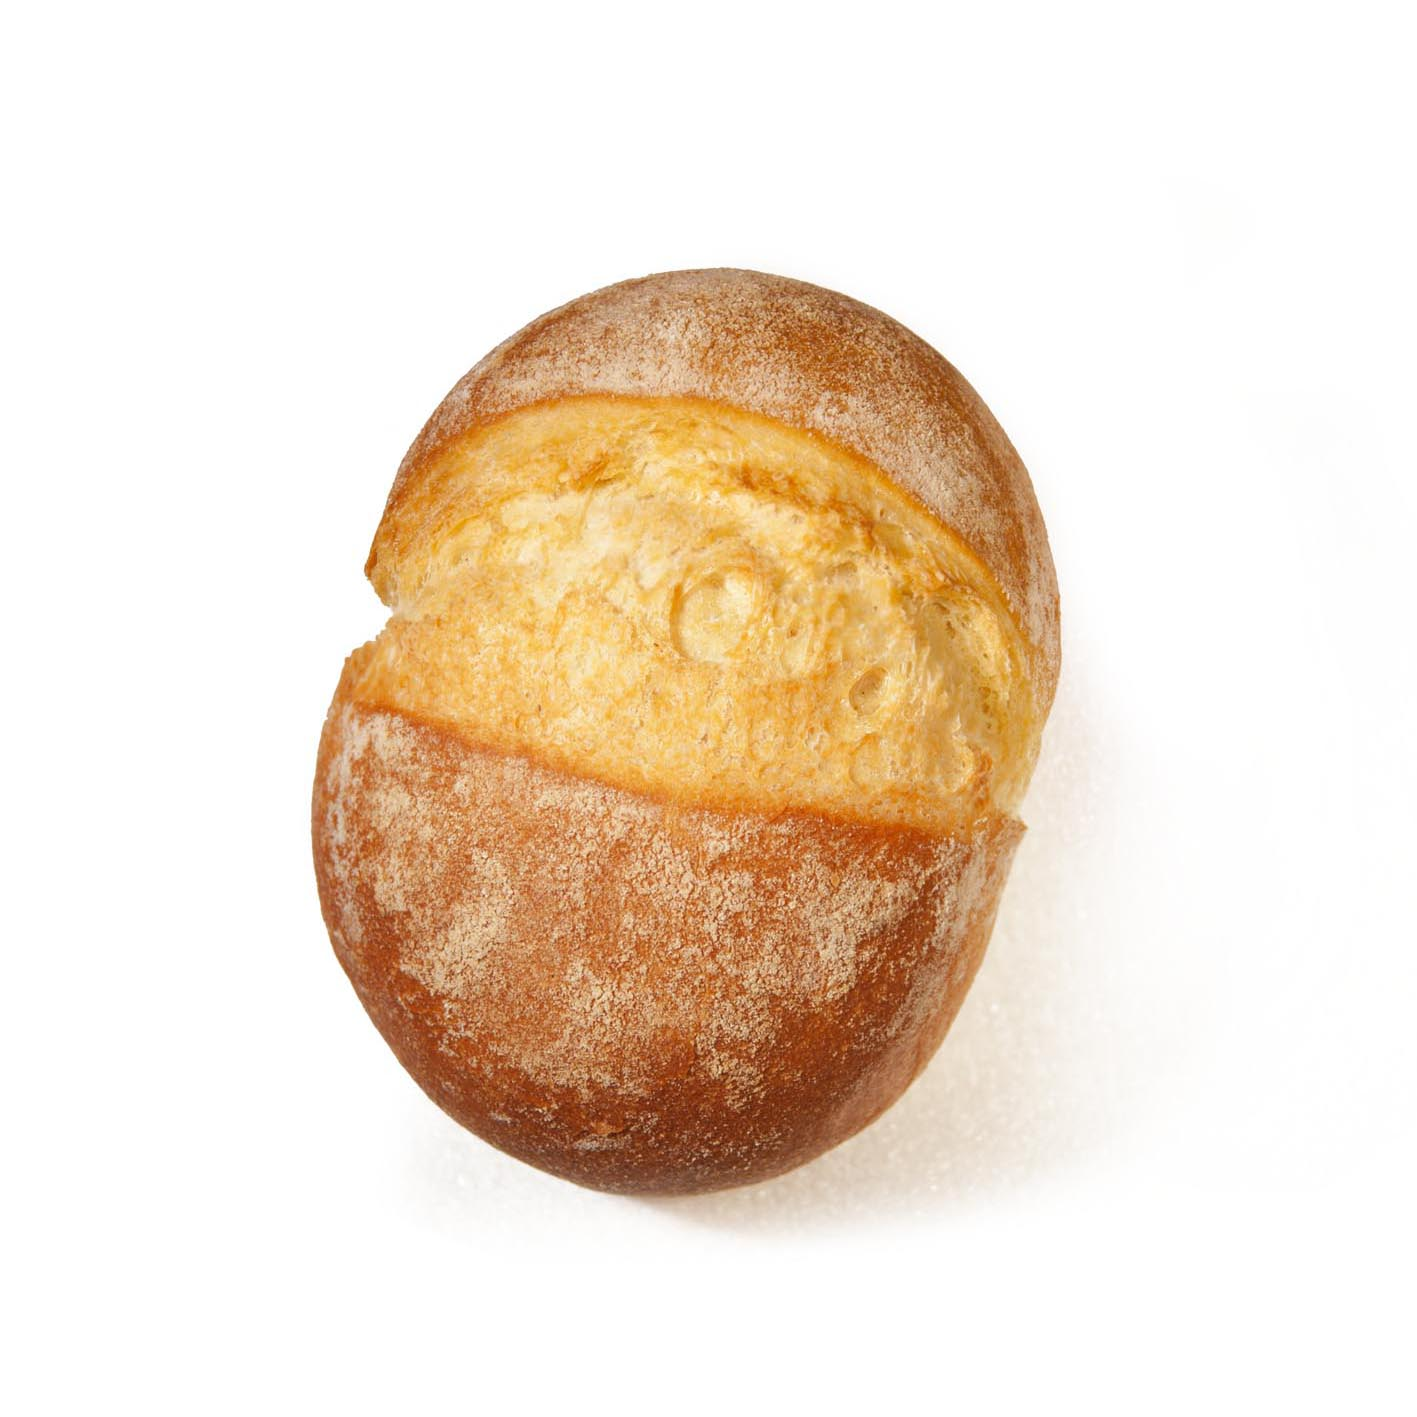 FROZEN SPACCATINA BREAD ROLL WITH DURUM WHEAT SEMOLINA  50G, BAKERY&CEREAL/BAKED, Italy, OROPAN S.p.A.